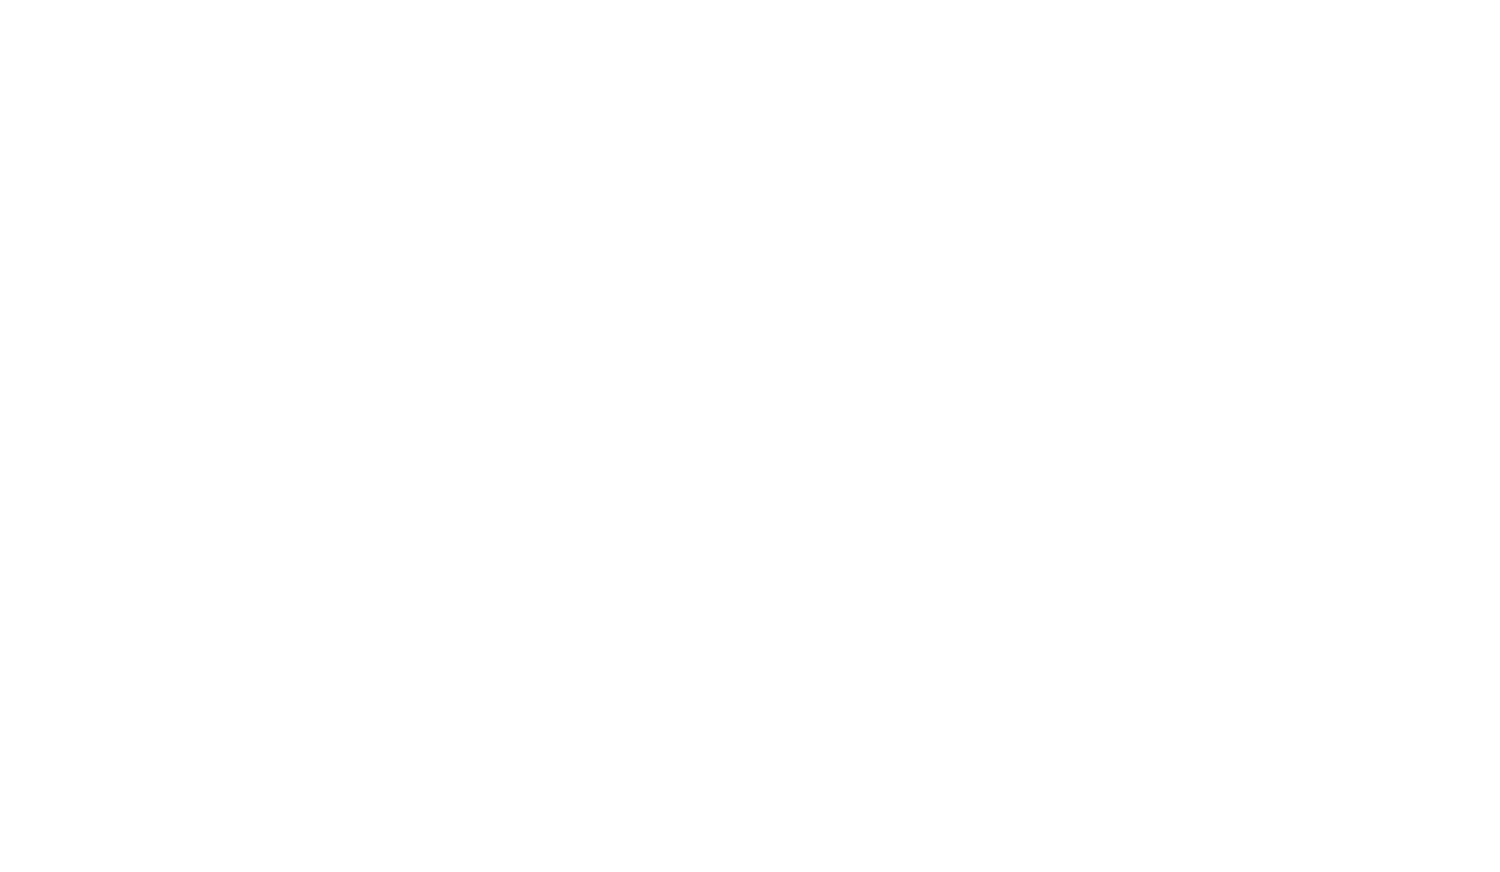 Eye Candy Productions